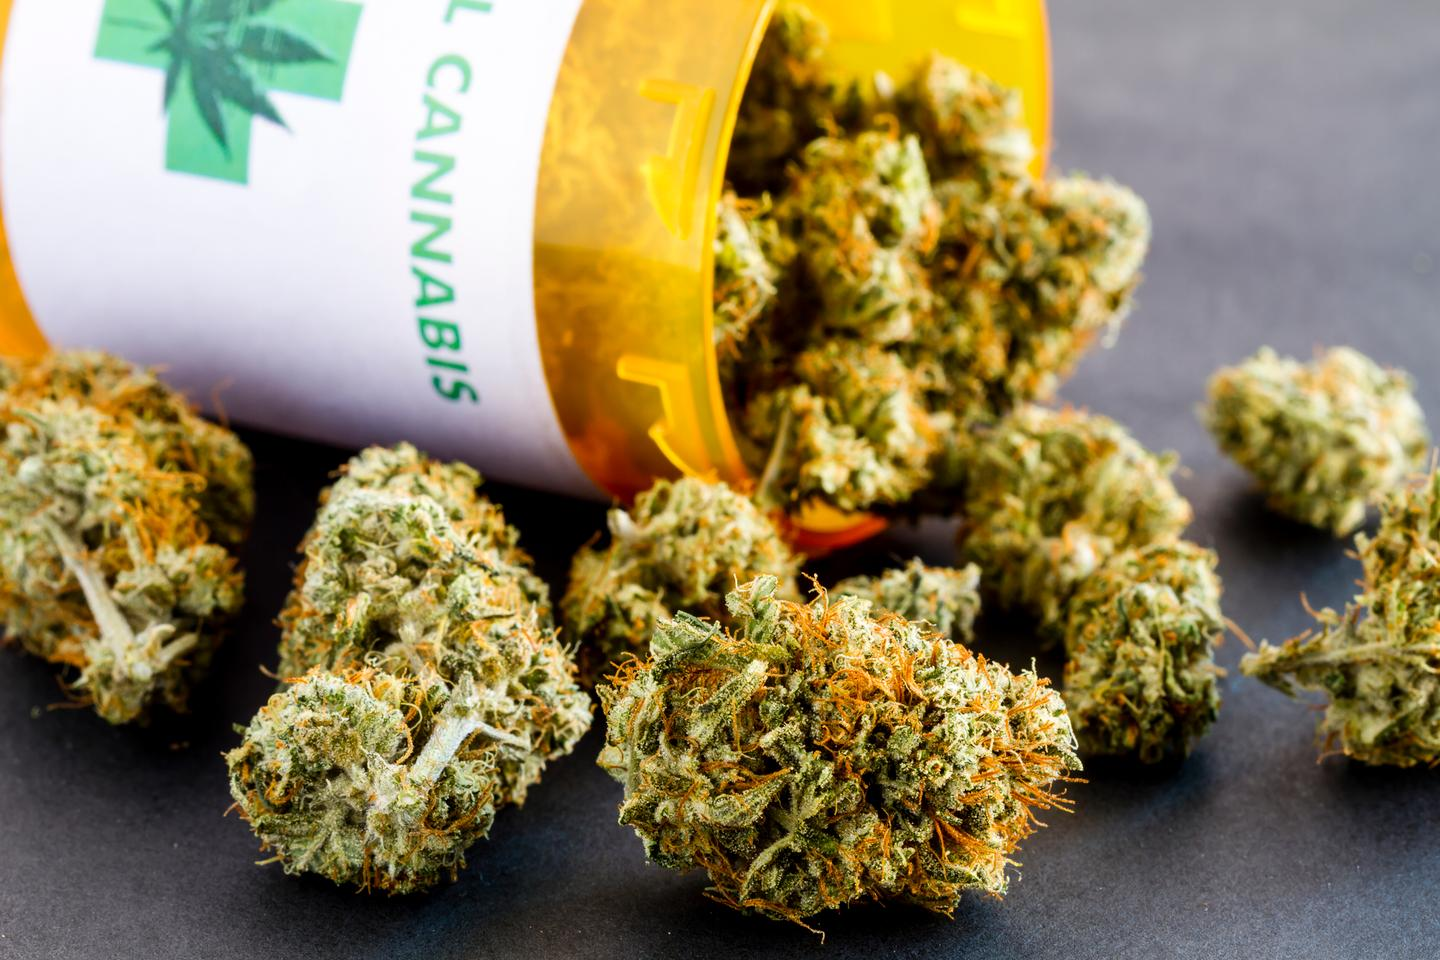 A new study affirms prior research pointing to concerns over modern high-THC/low-CBD strains of marijuana